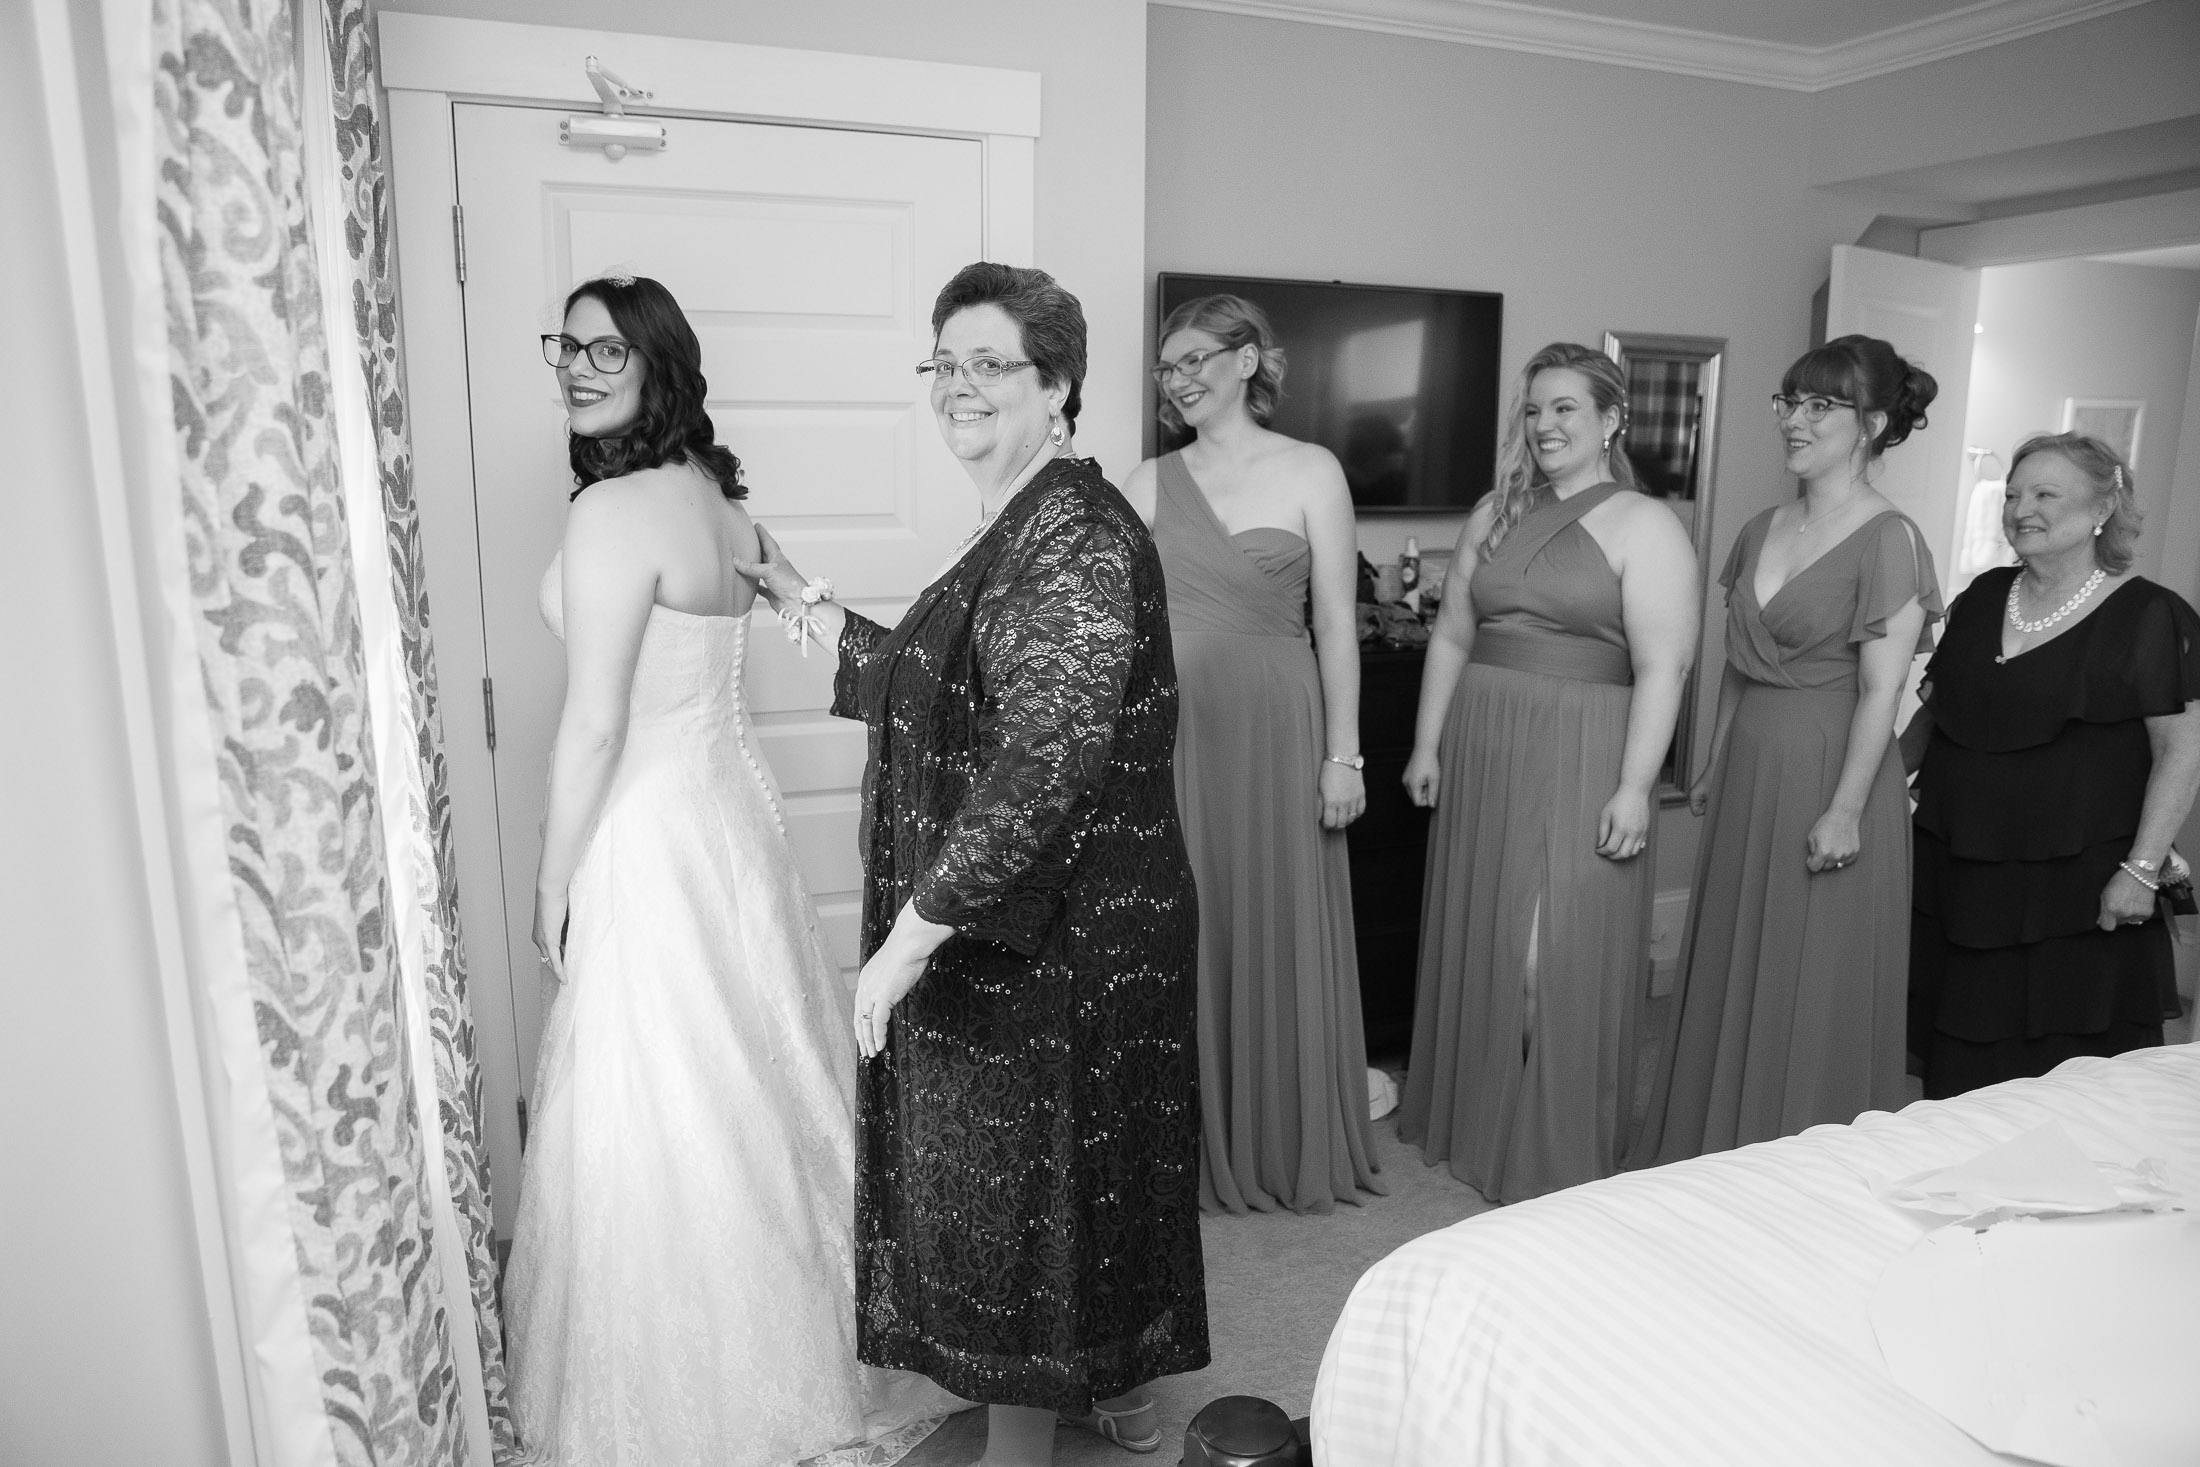 bridal party, getting ready, wedding, bride, tracy jenkins photography, publick house, Massachusetts, new england,  photography